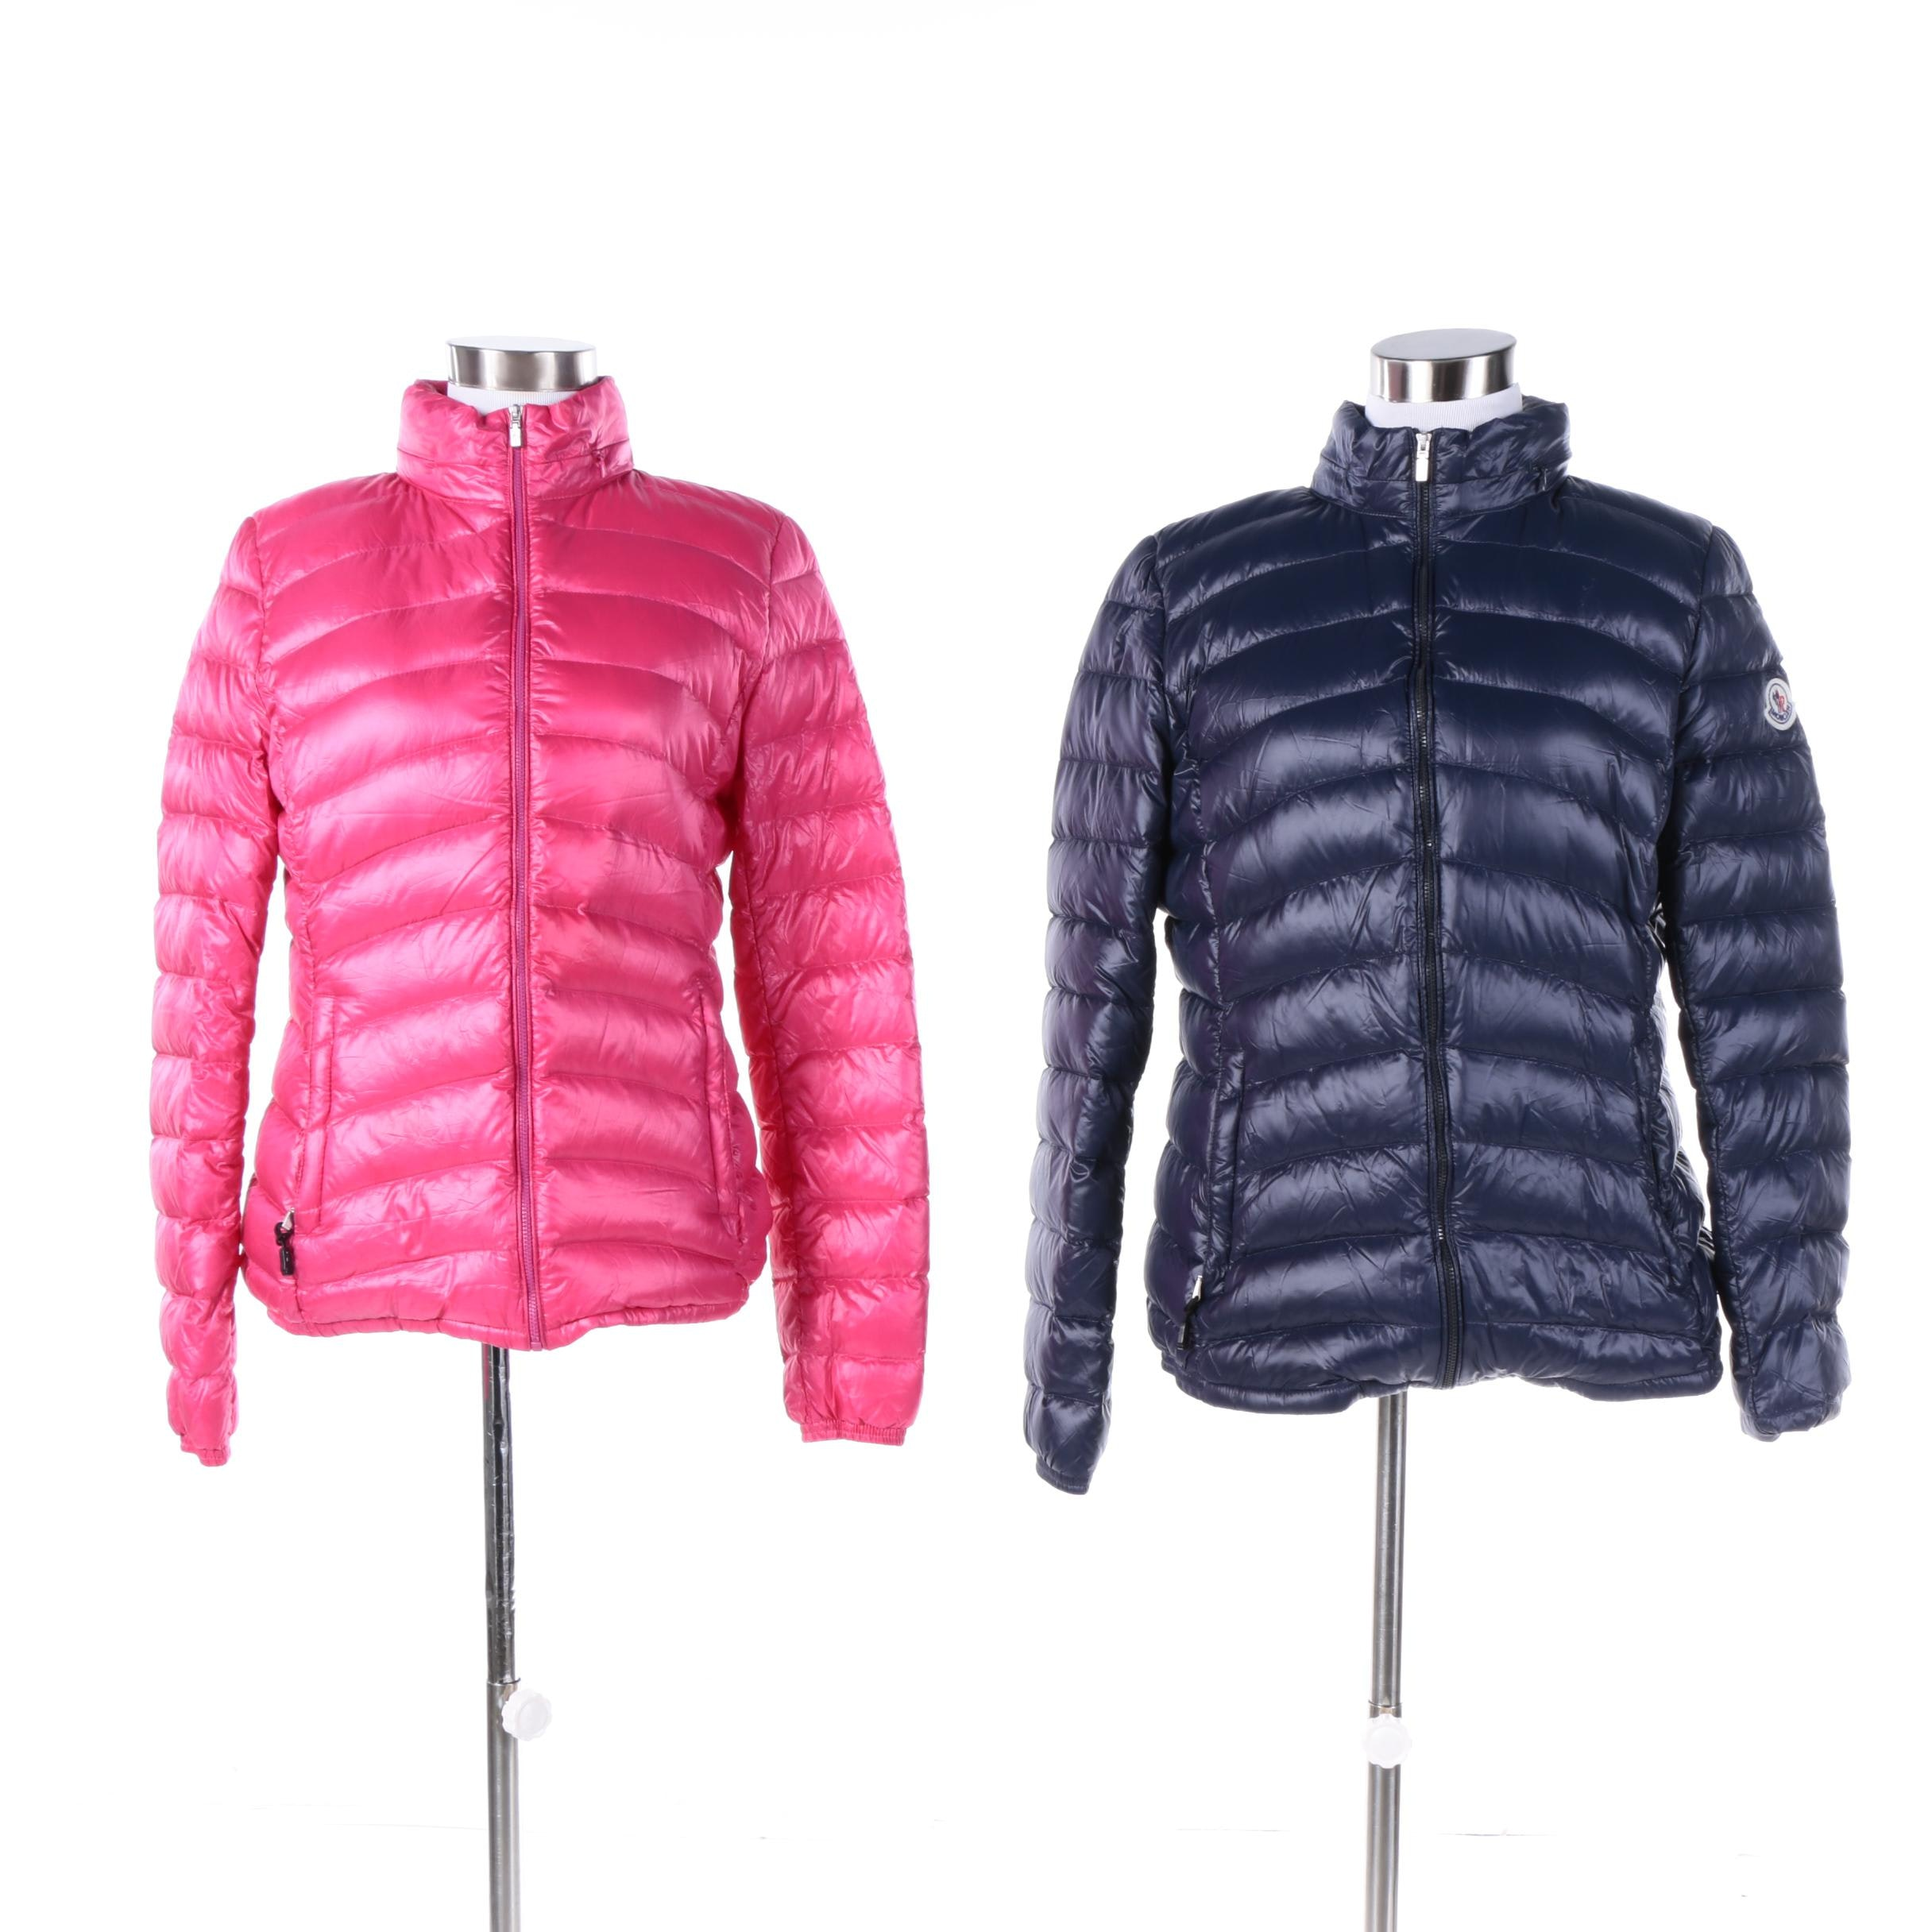 Women's Moncler Pink and Navy Puffer Jackets